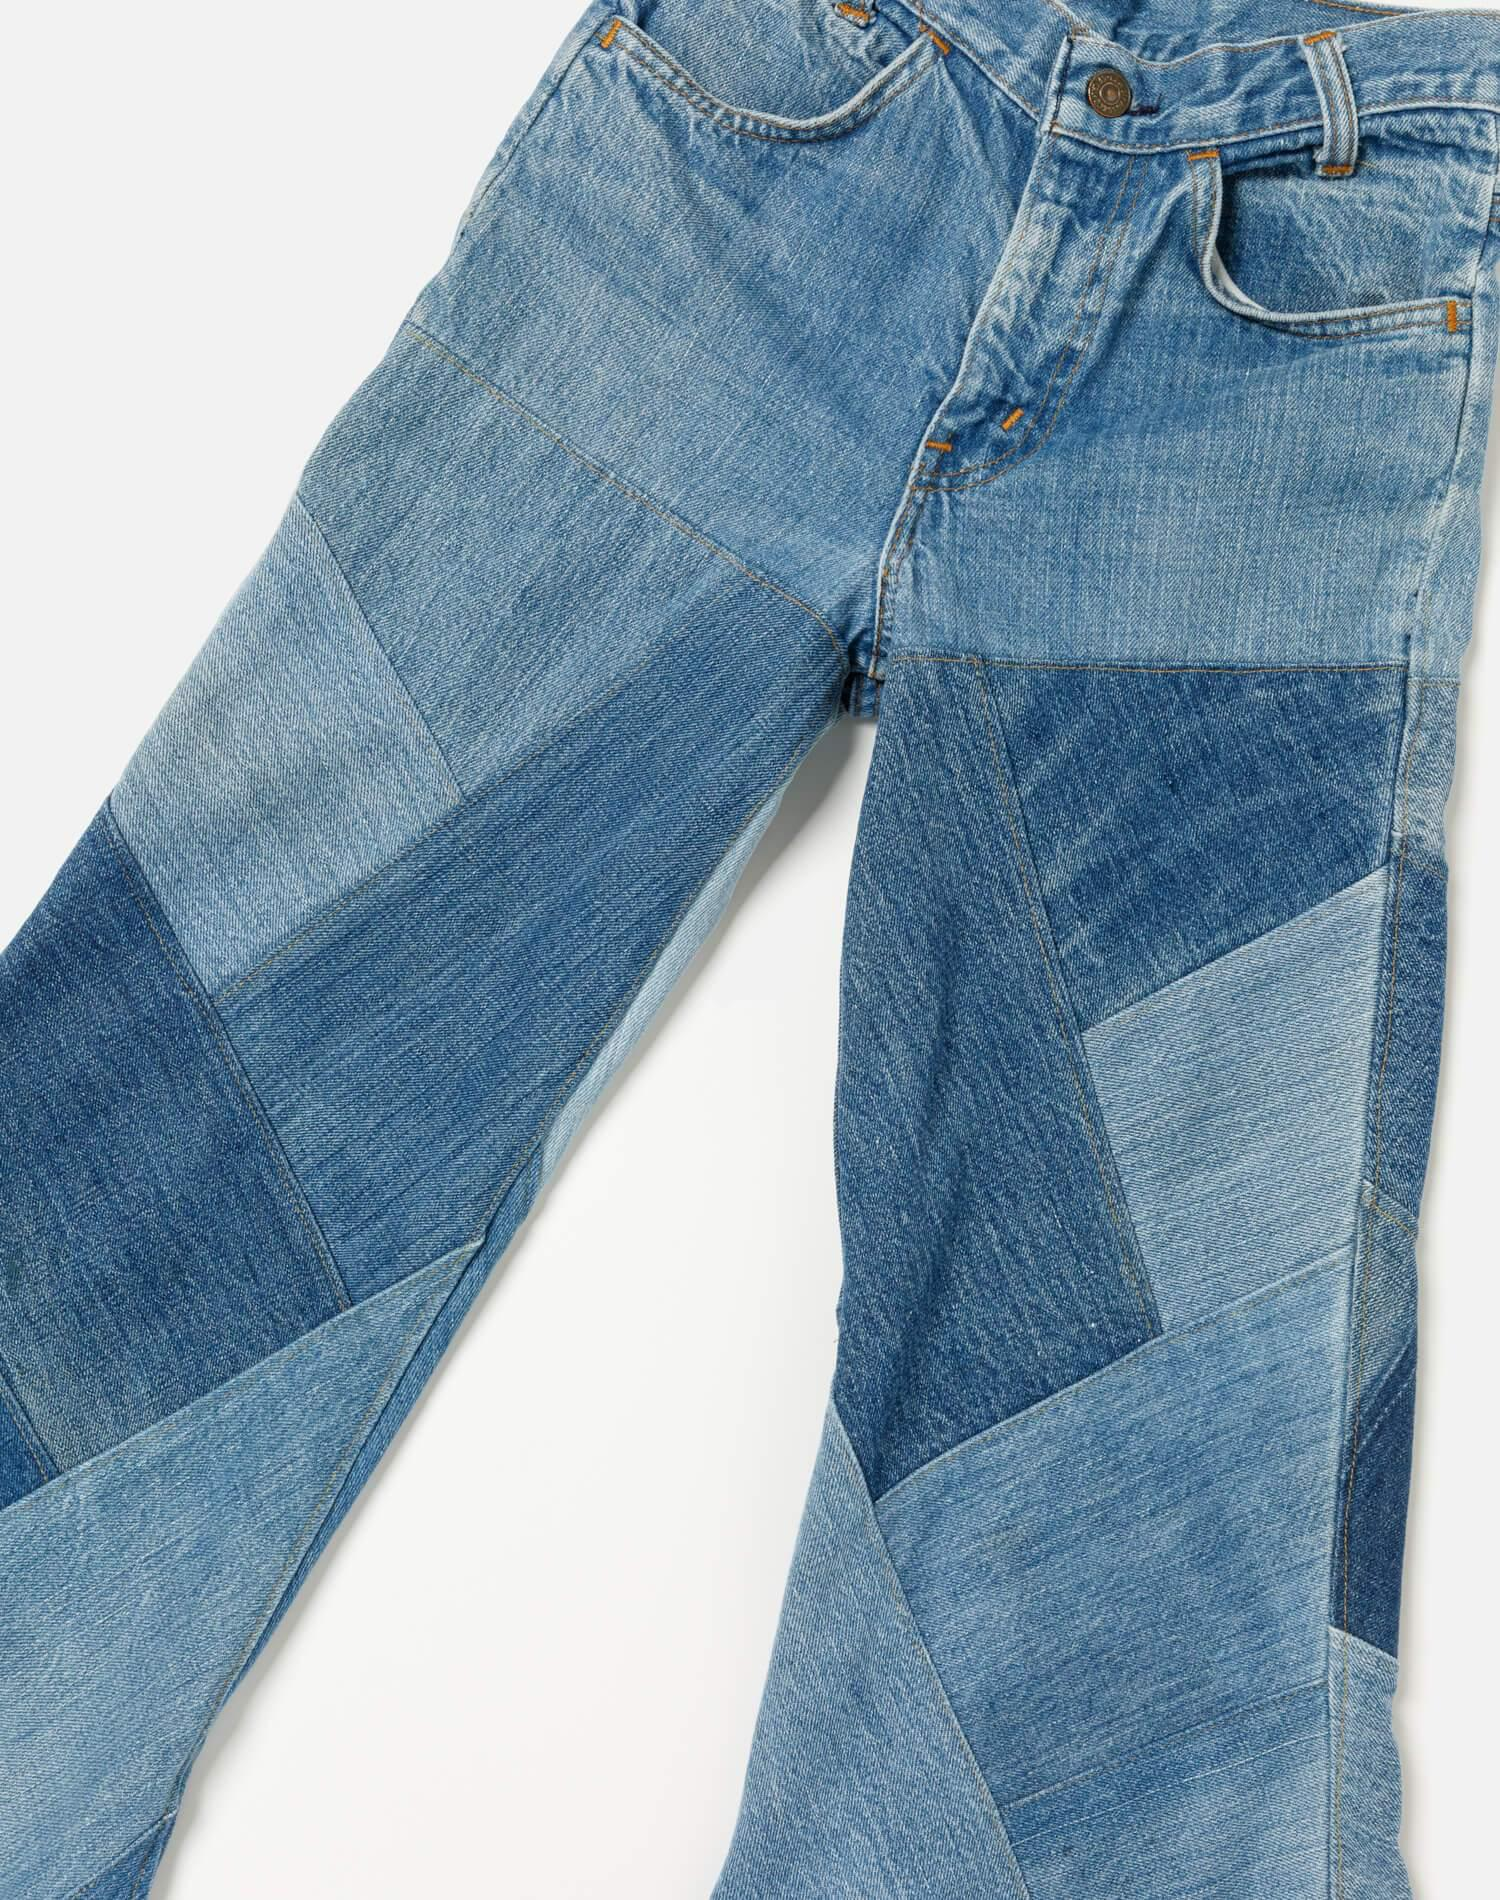 70s Vintage Levi's Mid Rise Bell Bottom Size 25 - #218 2